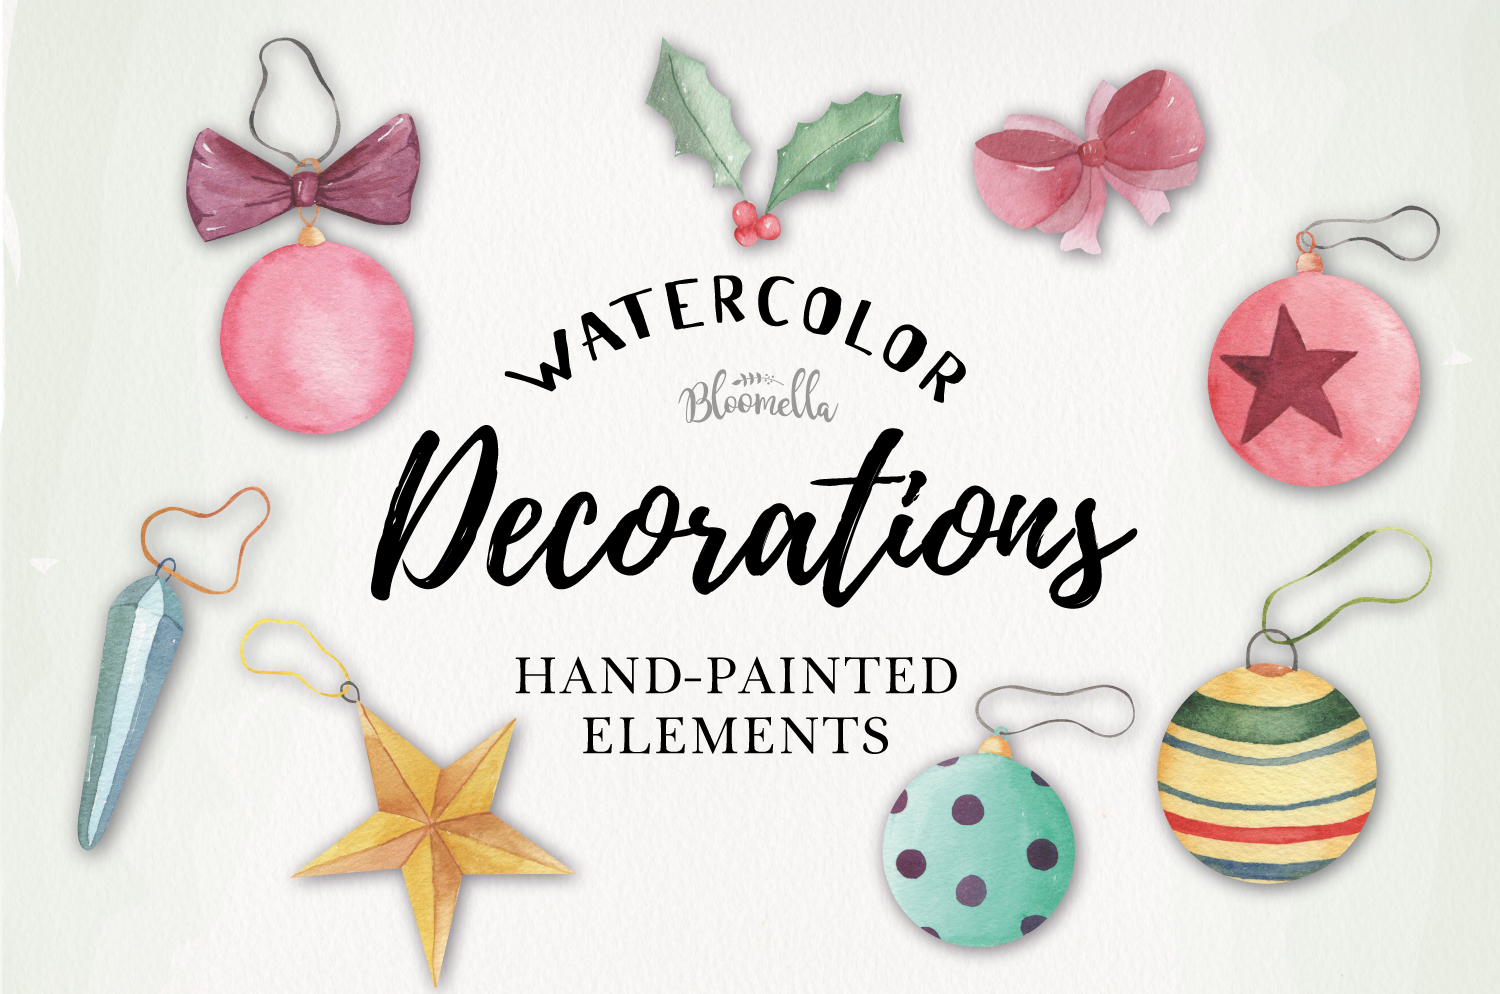 Decorations Holiday Watercolor 10 Elements Christmas Tree example image 1